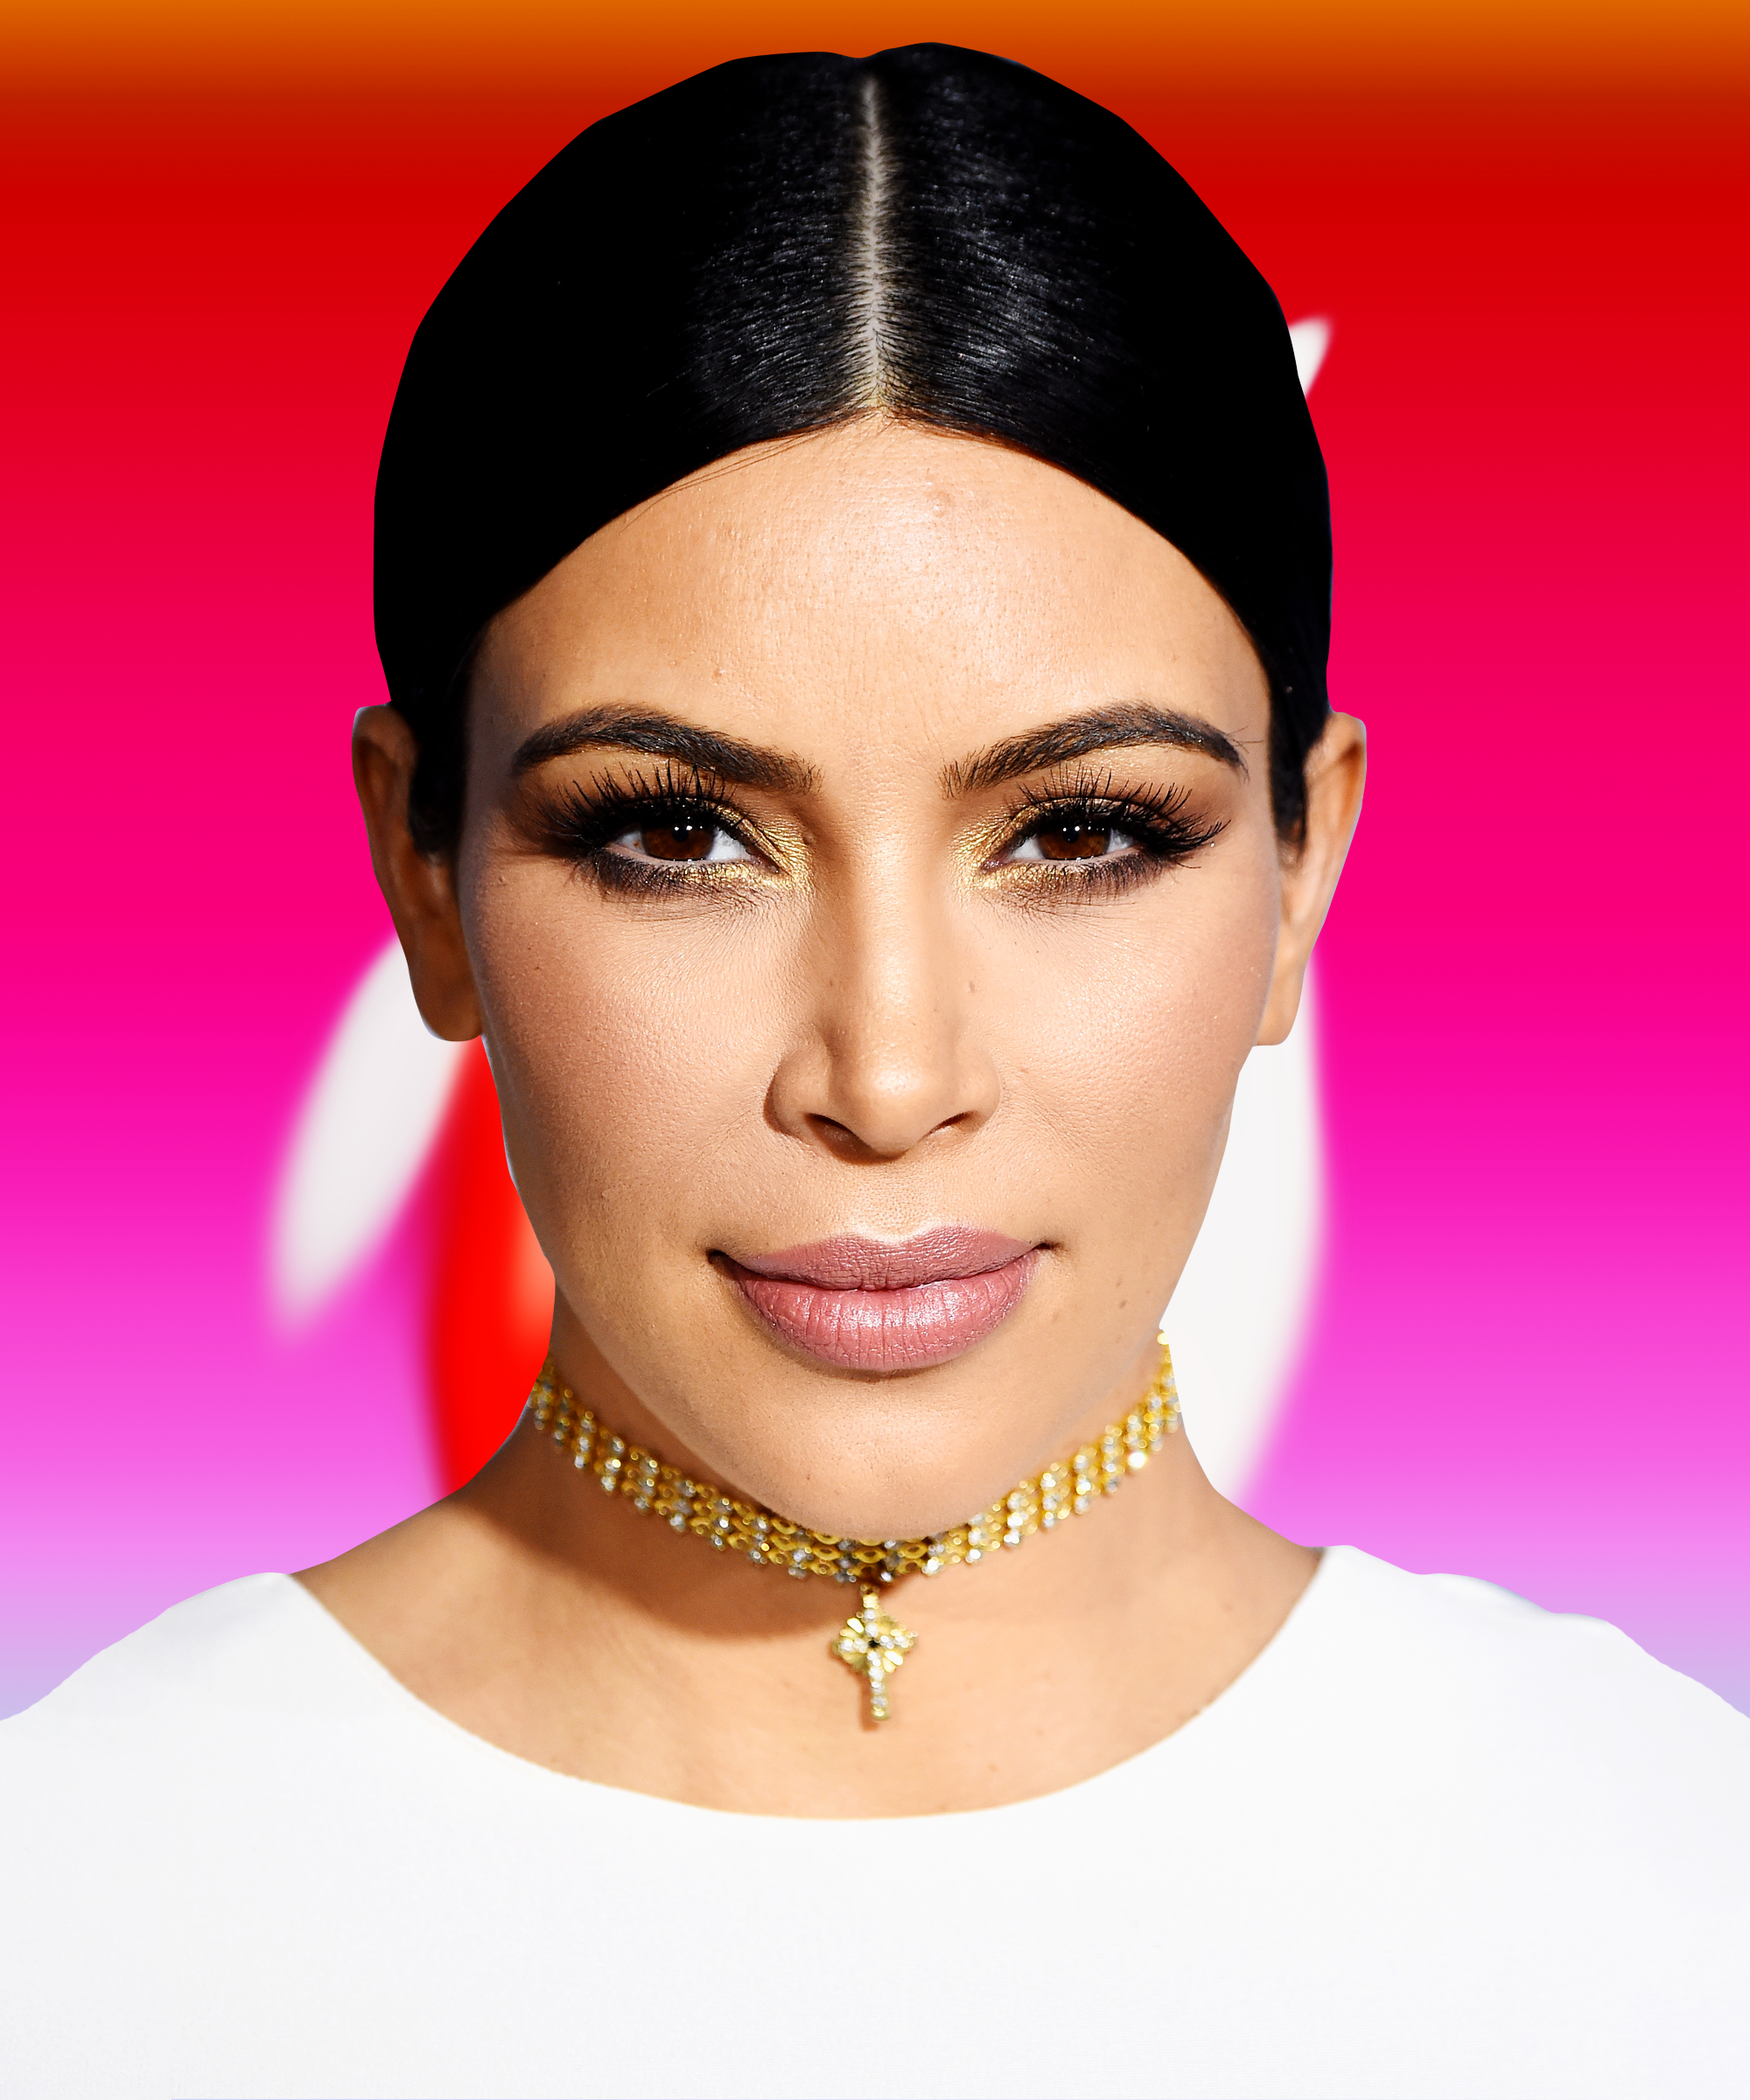 Kim Kardashian Crying Face Png Kim Kardashian Phenomenal Star